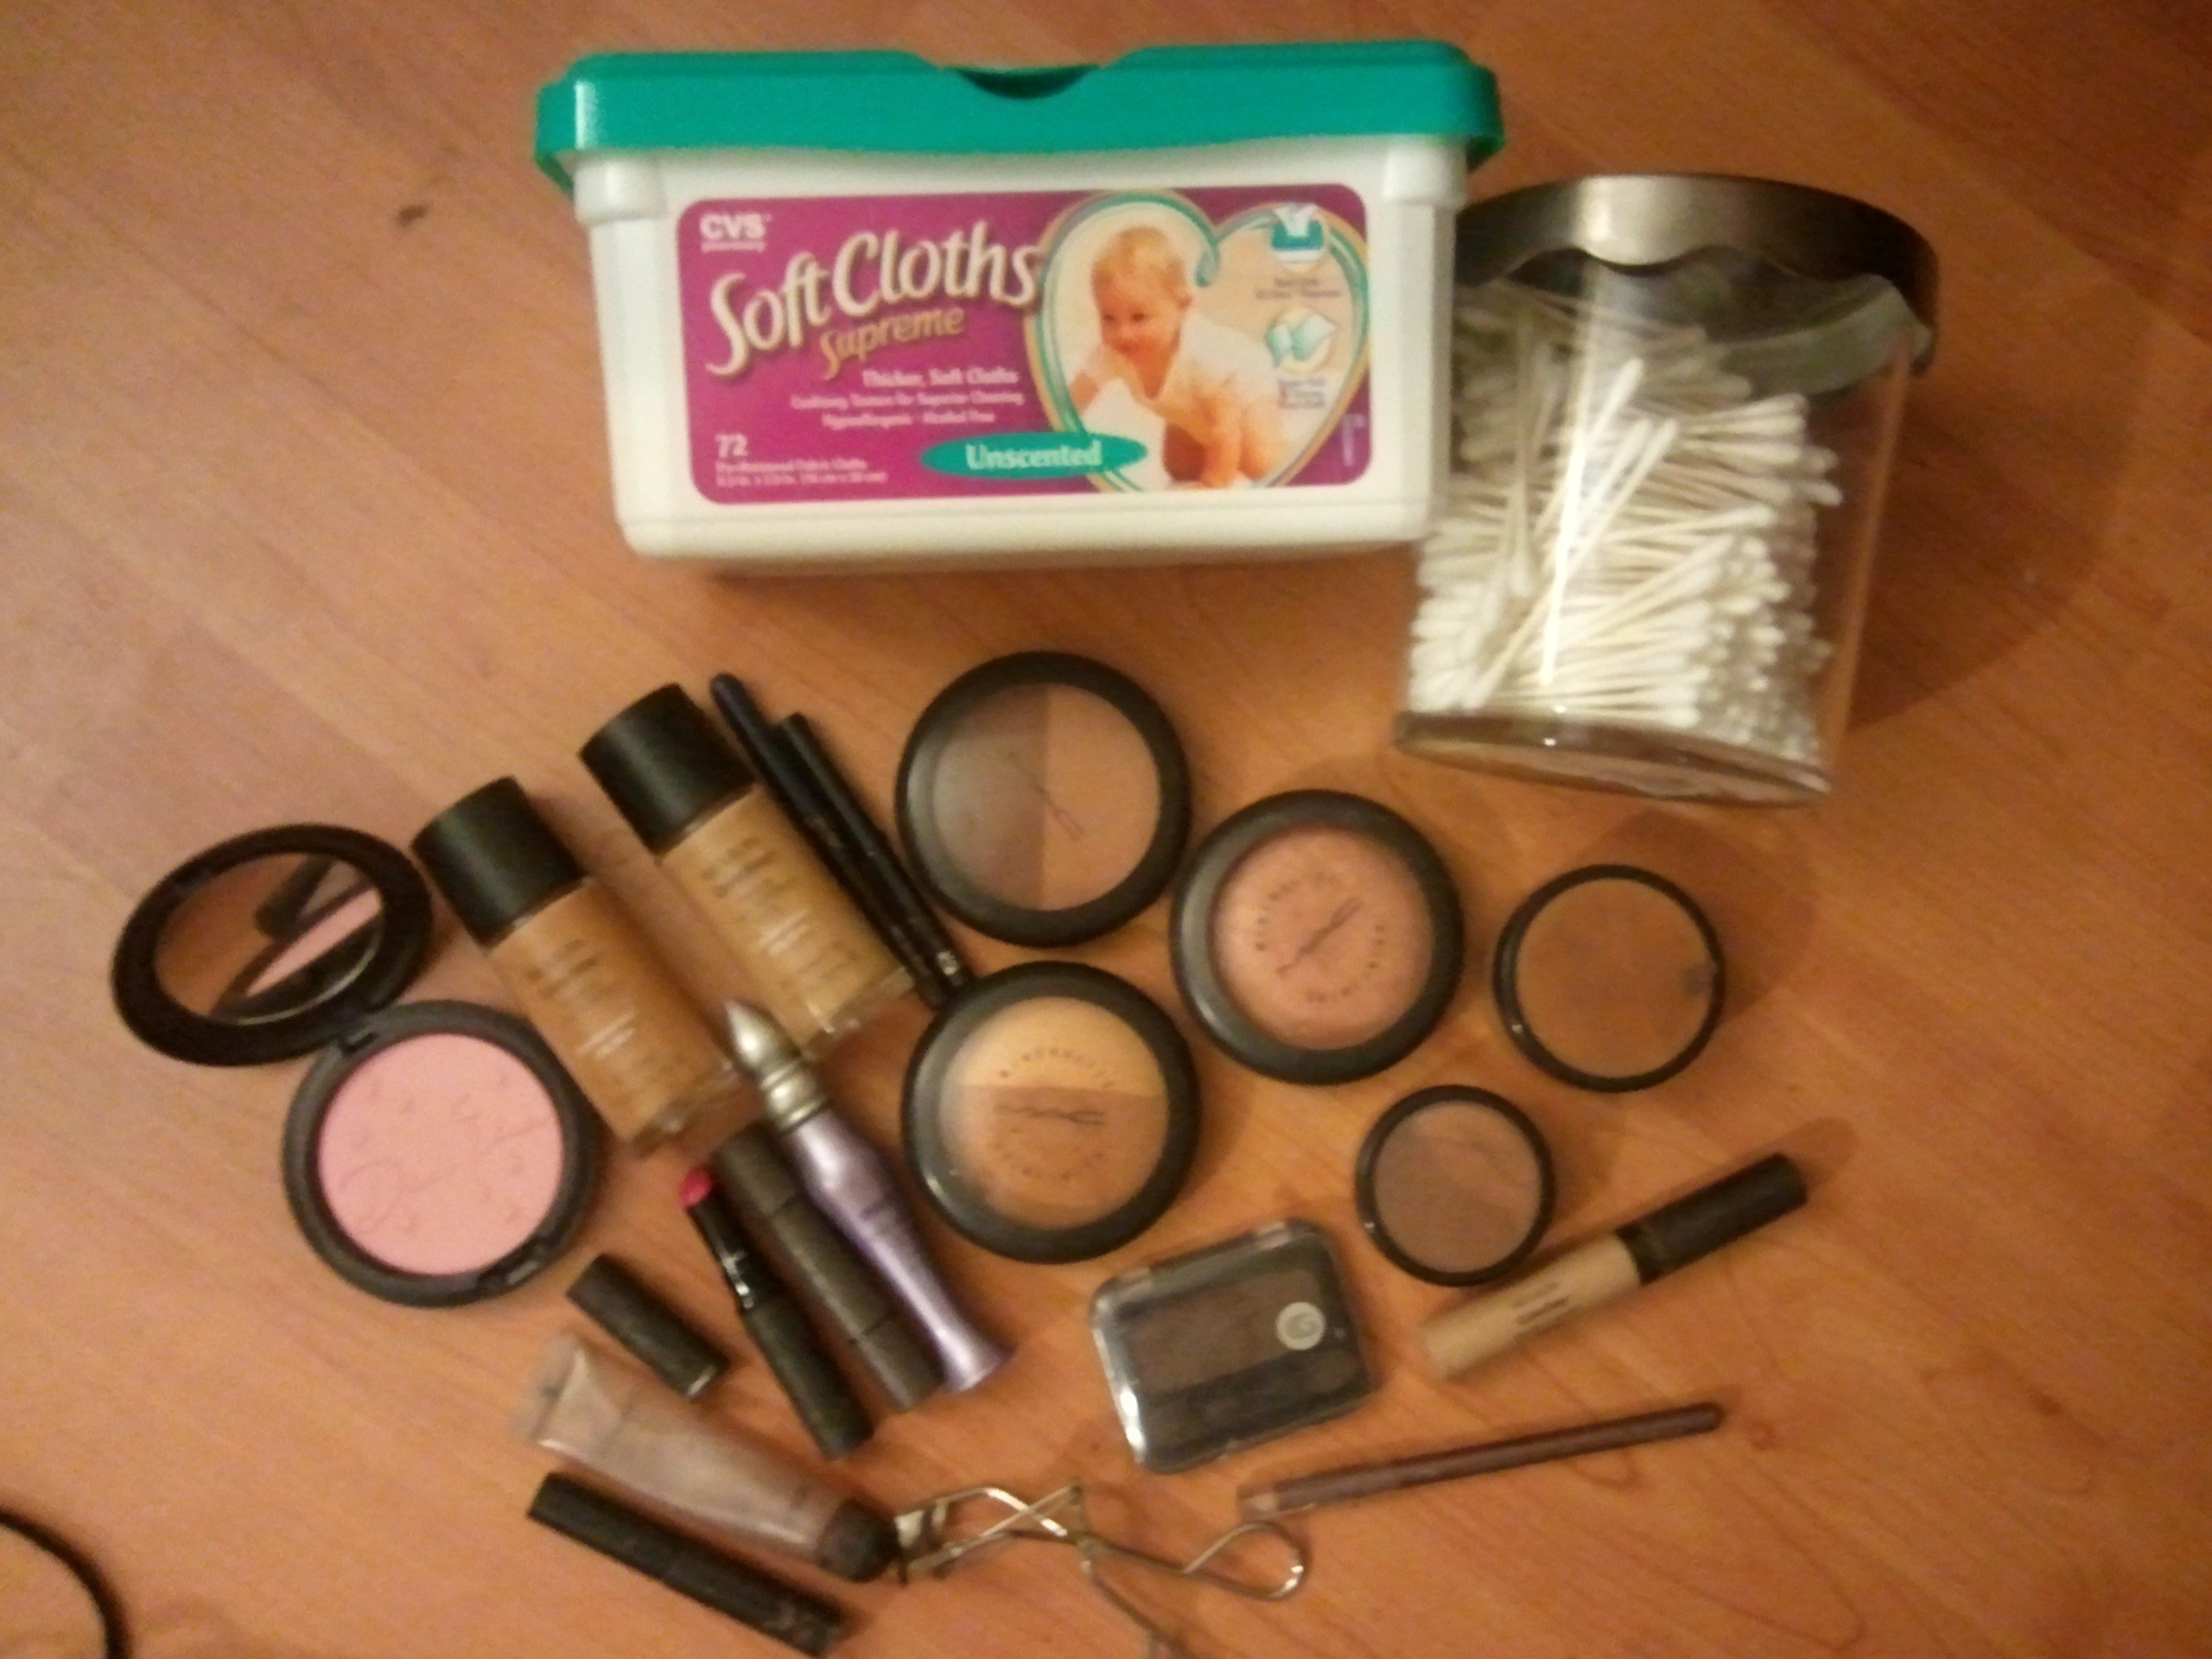 Essentials in my Makeup Kit